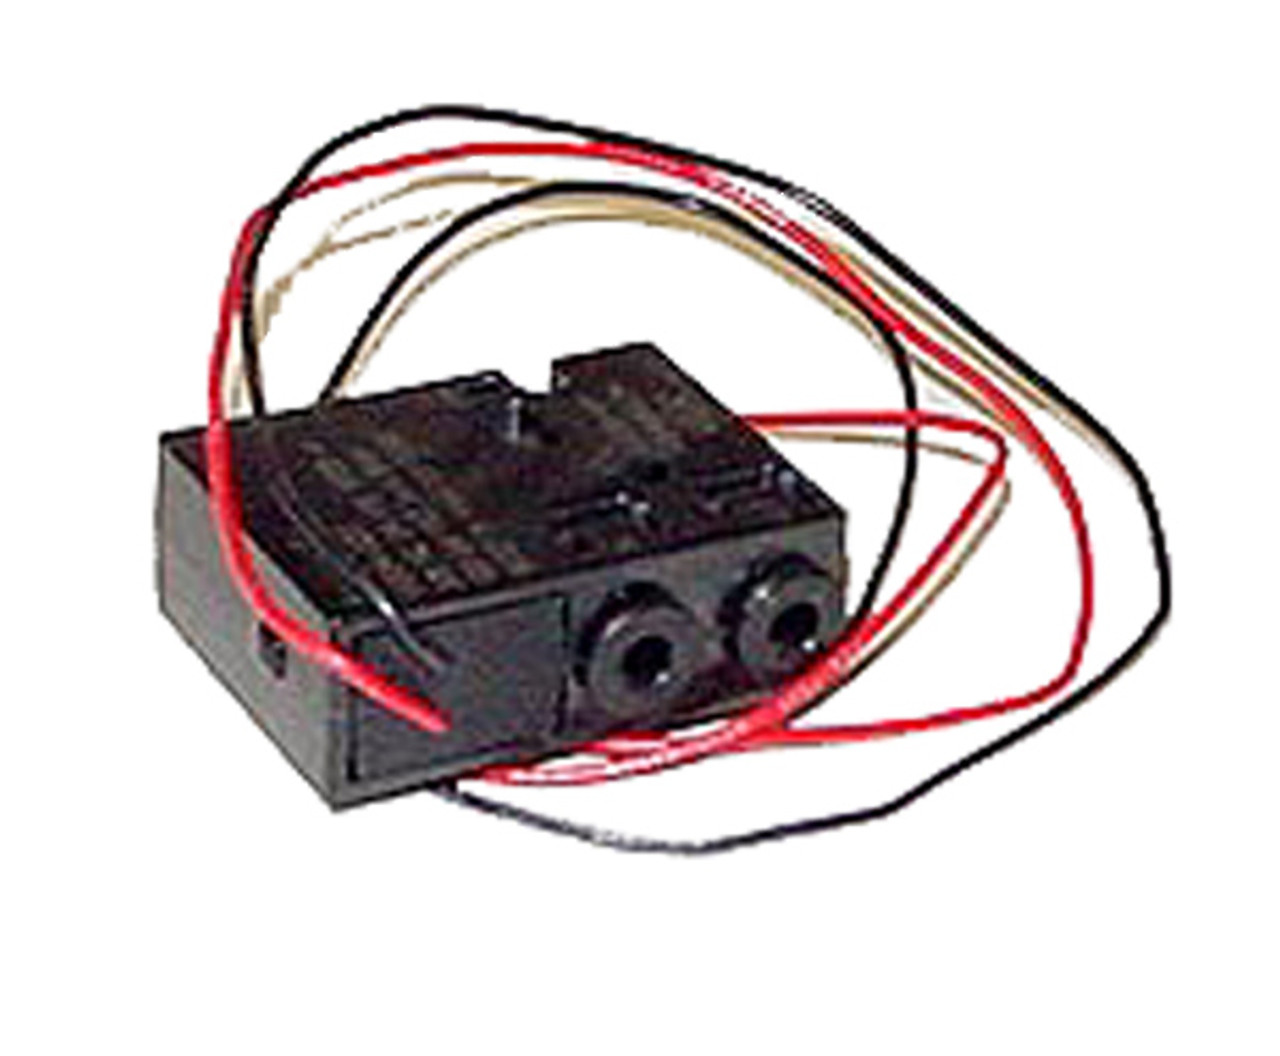 P21324 - Mead Solenoid, TSM-21 up to SN:61036